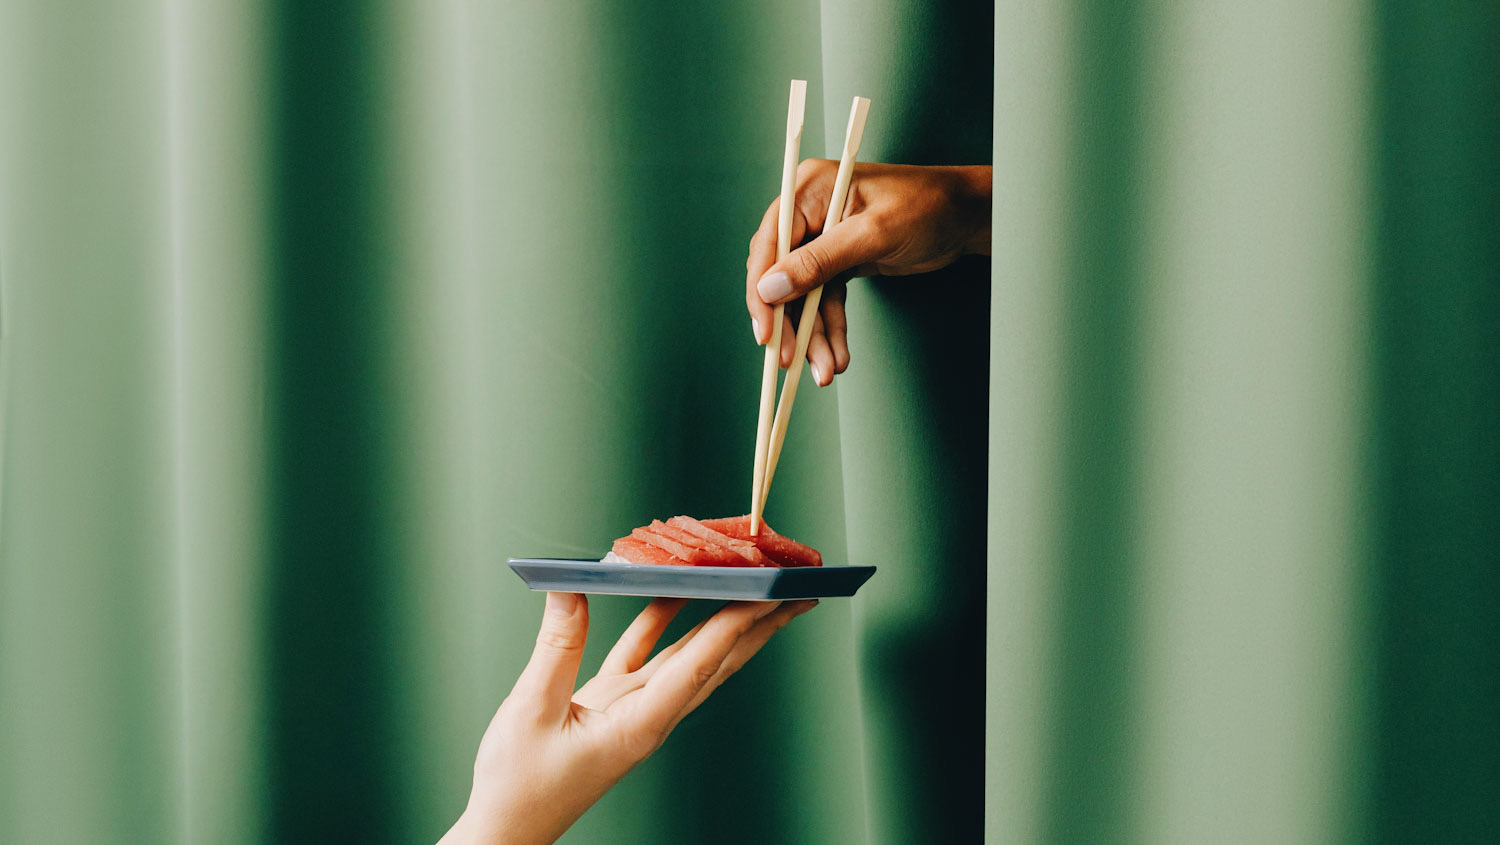 What is a cultured sushi tasting room? Image shows a hand holding up a plate of sushi with another hand emerging from a green curtain with chopsticks.